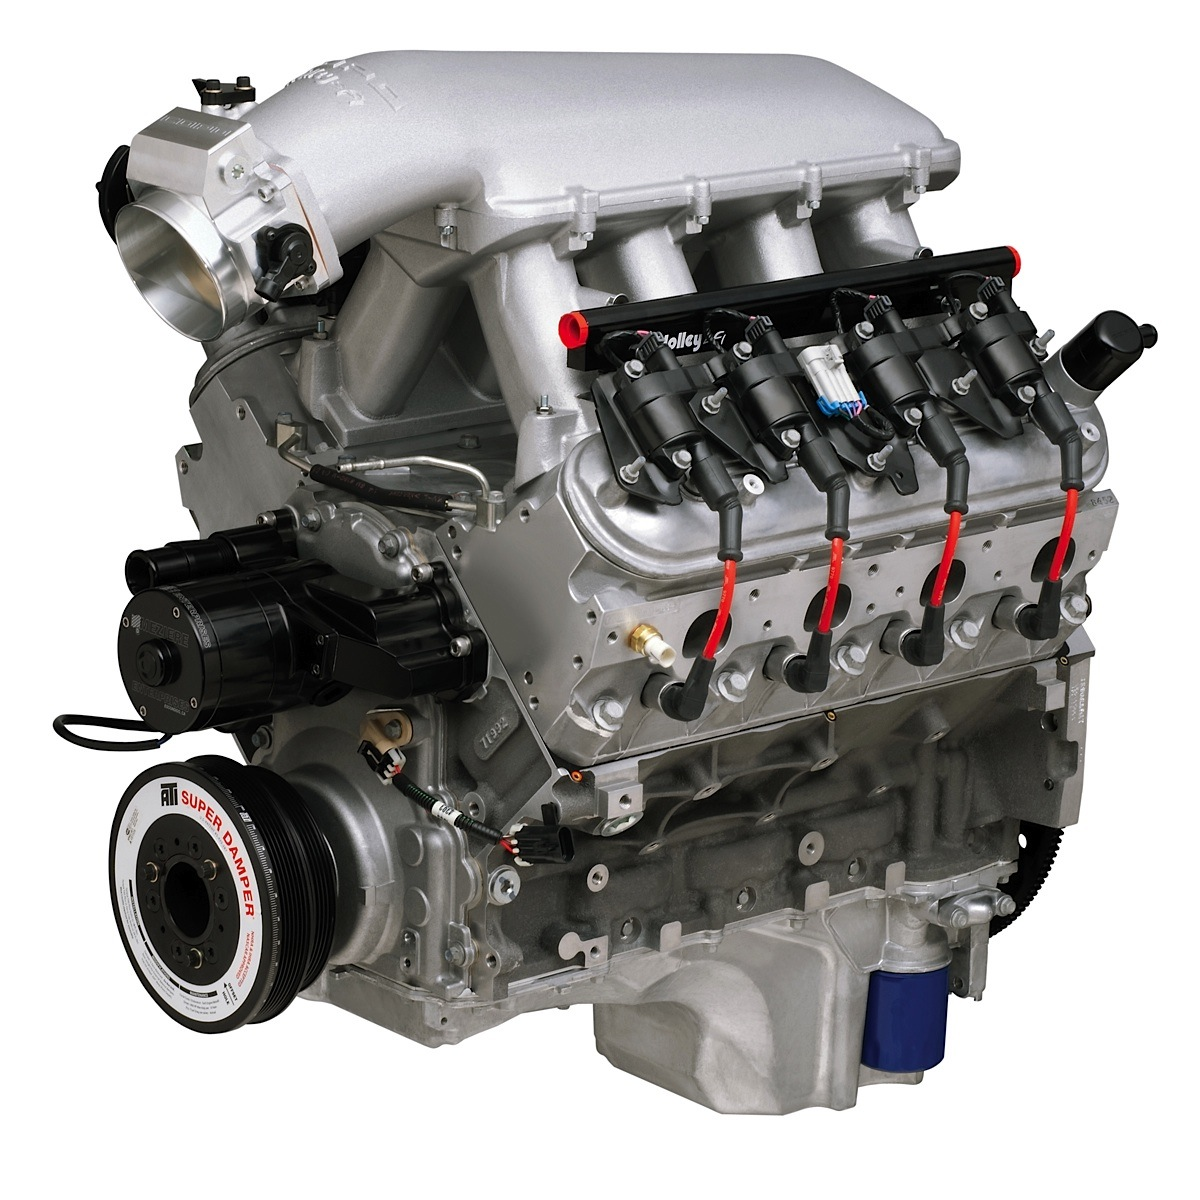 3 1 Liter Gm Engine Diagram 2014 Copo Camaro Powerplants Offered As Crate Engines